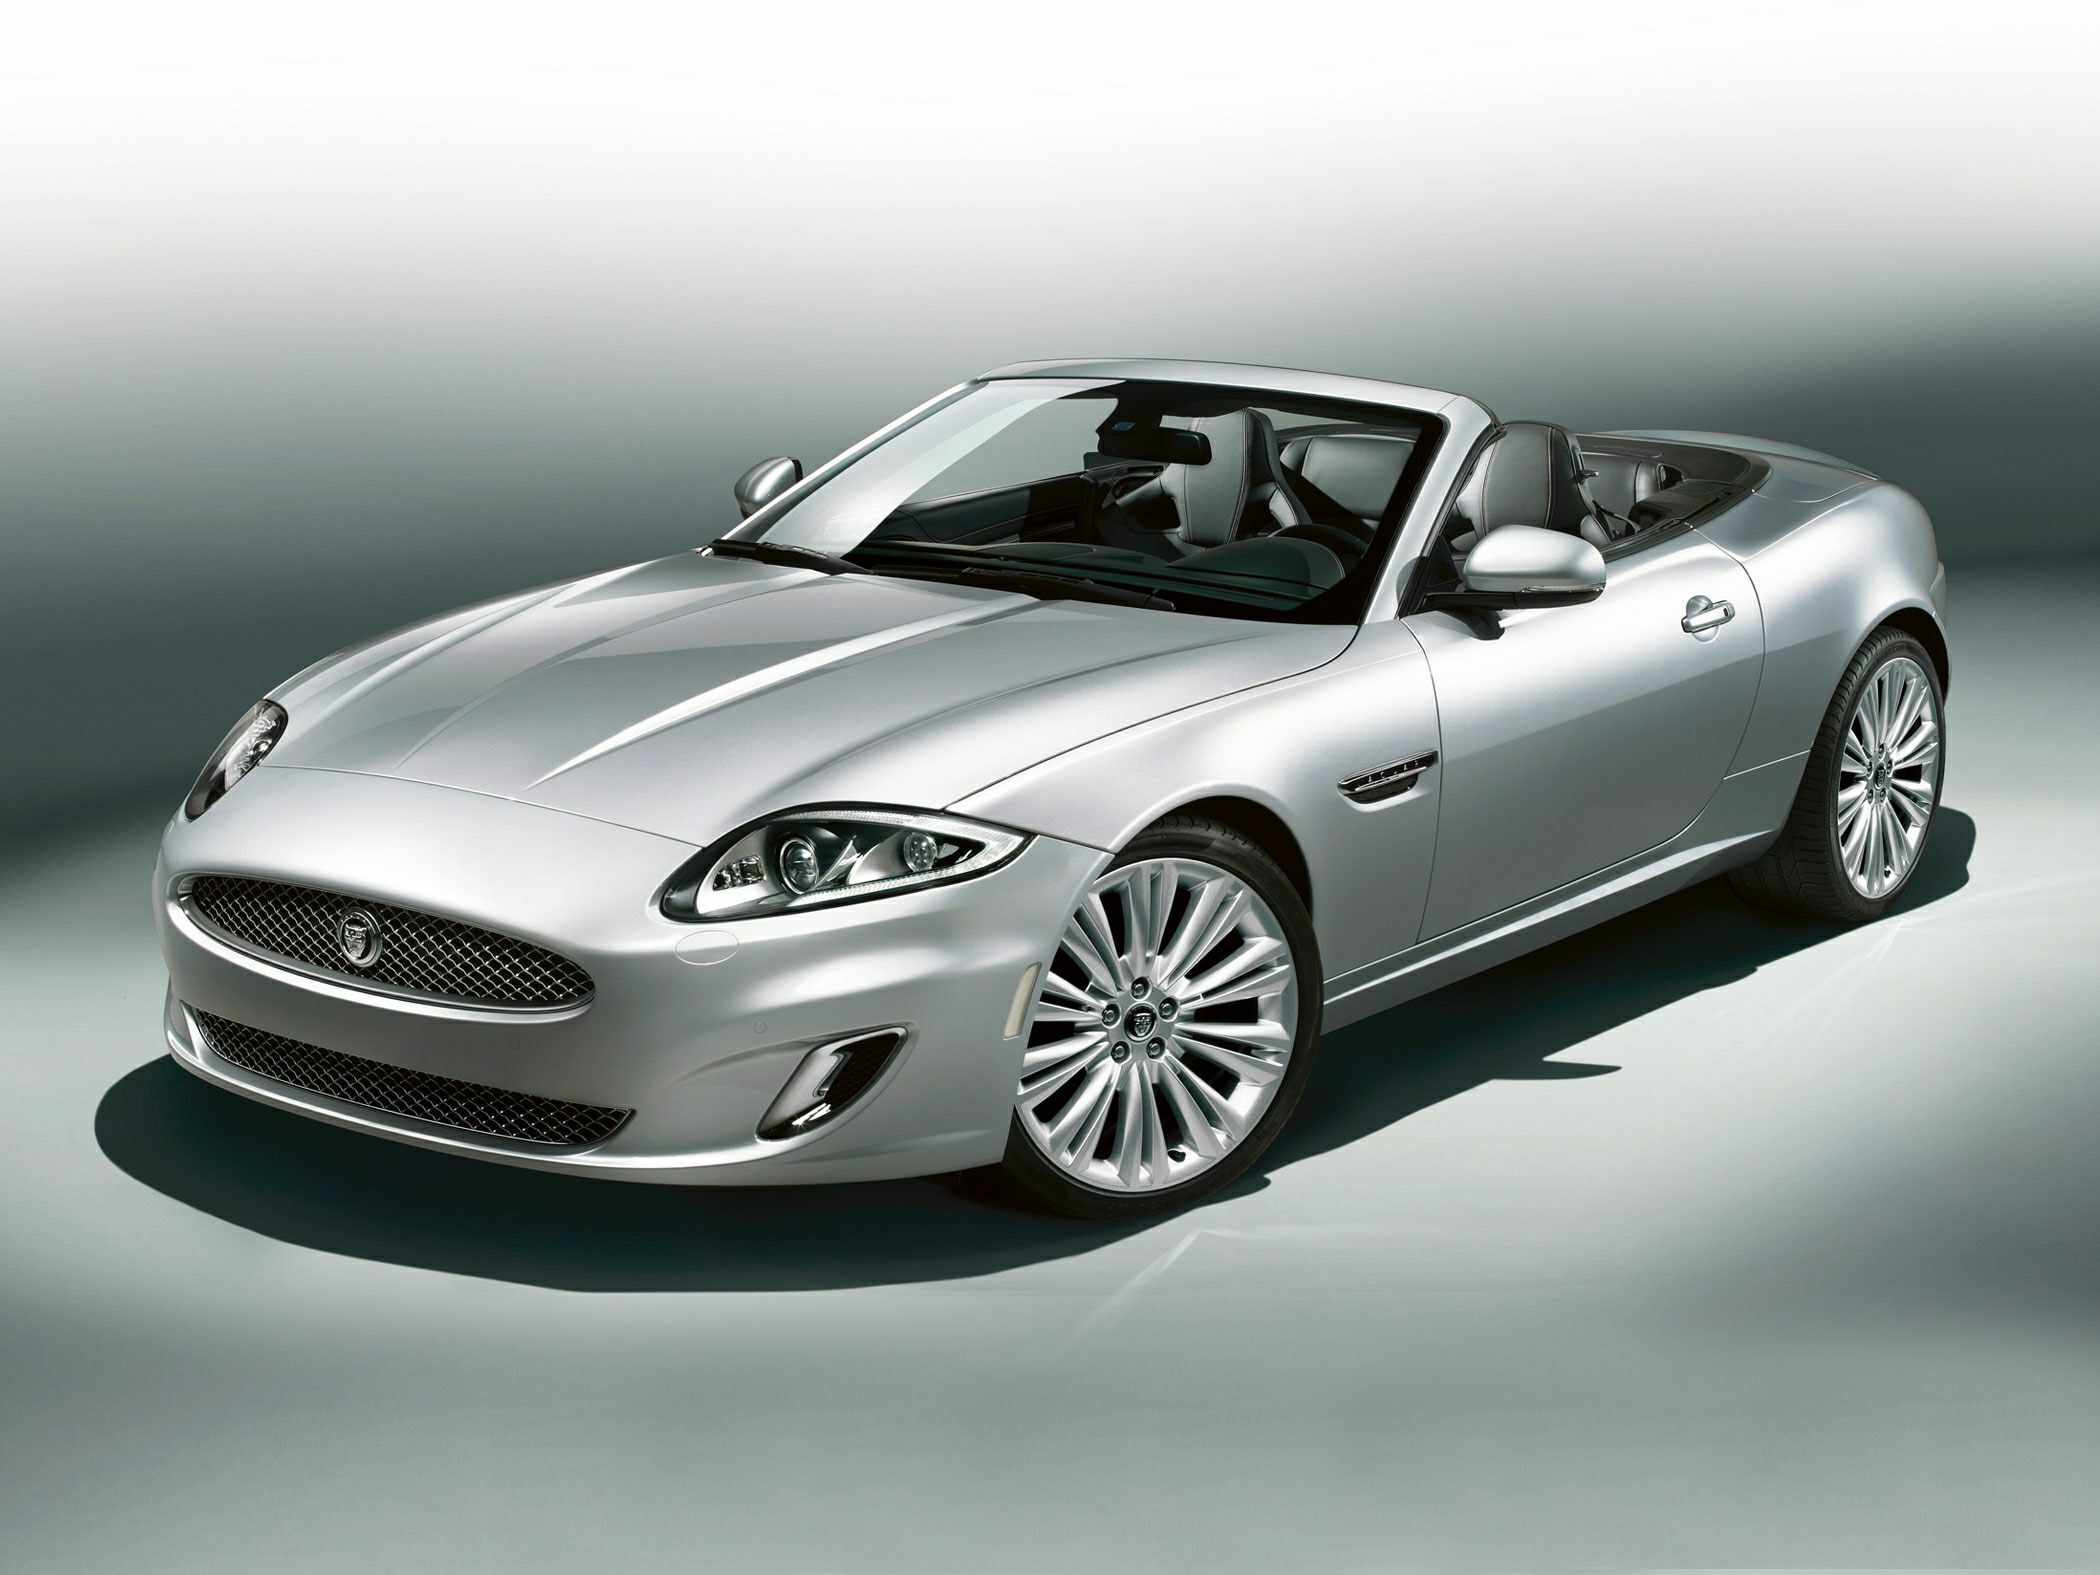 angular priced announced xk pricing news updated jaguar lineup convertible cars